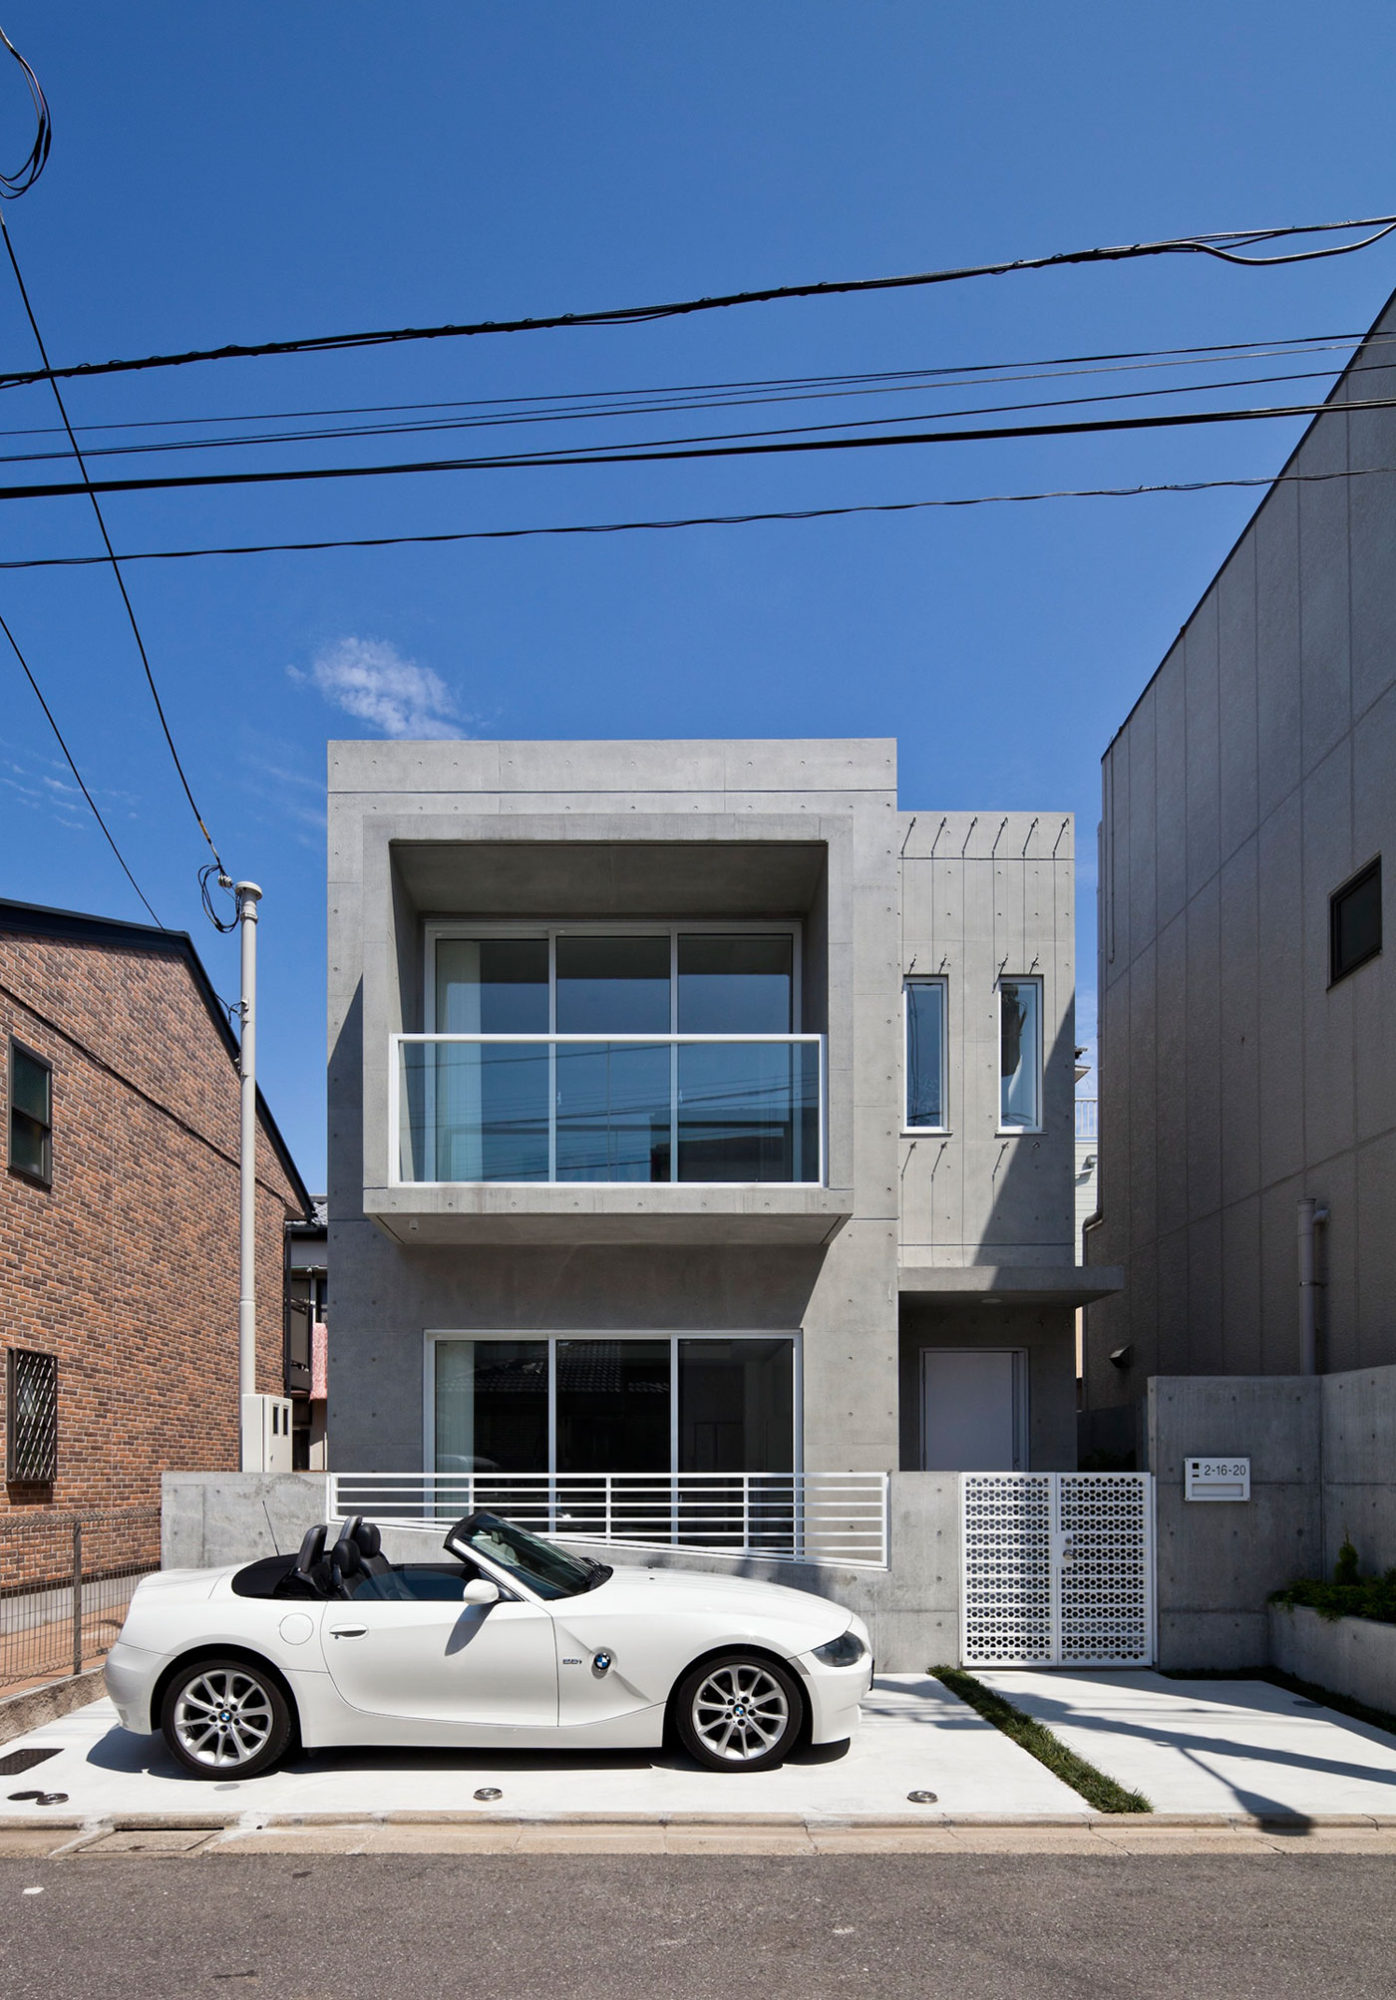 Modern zen design house in tokyo japan 2 for House designs zen